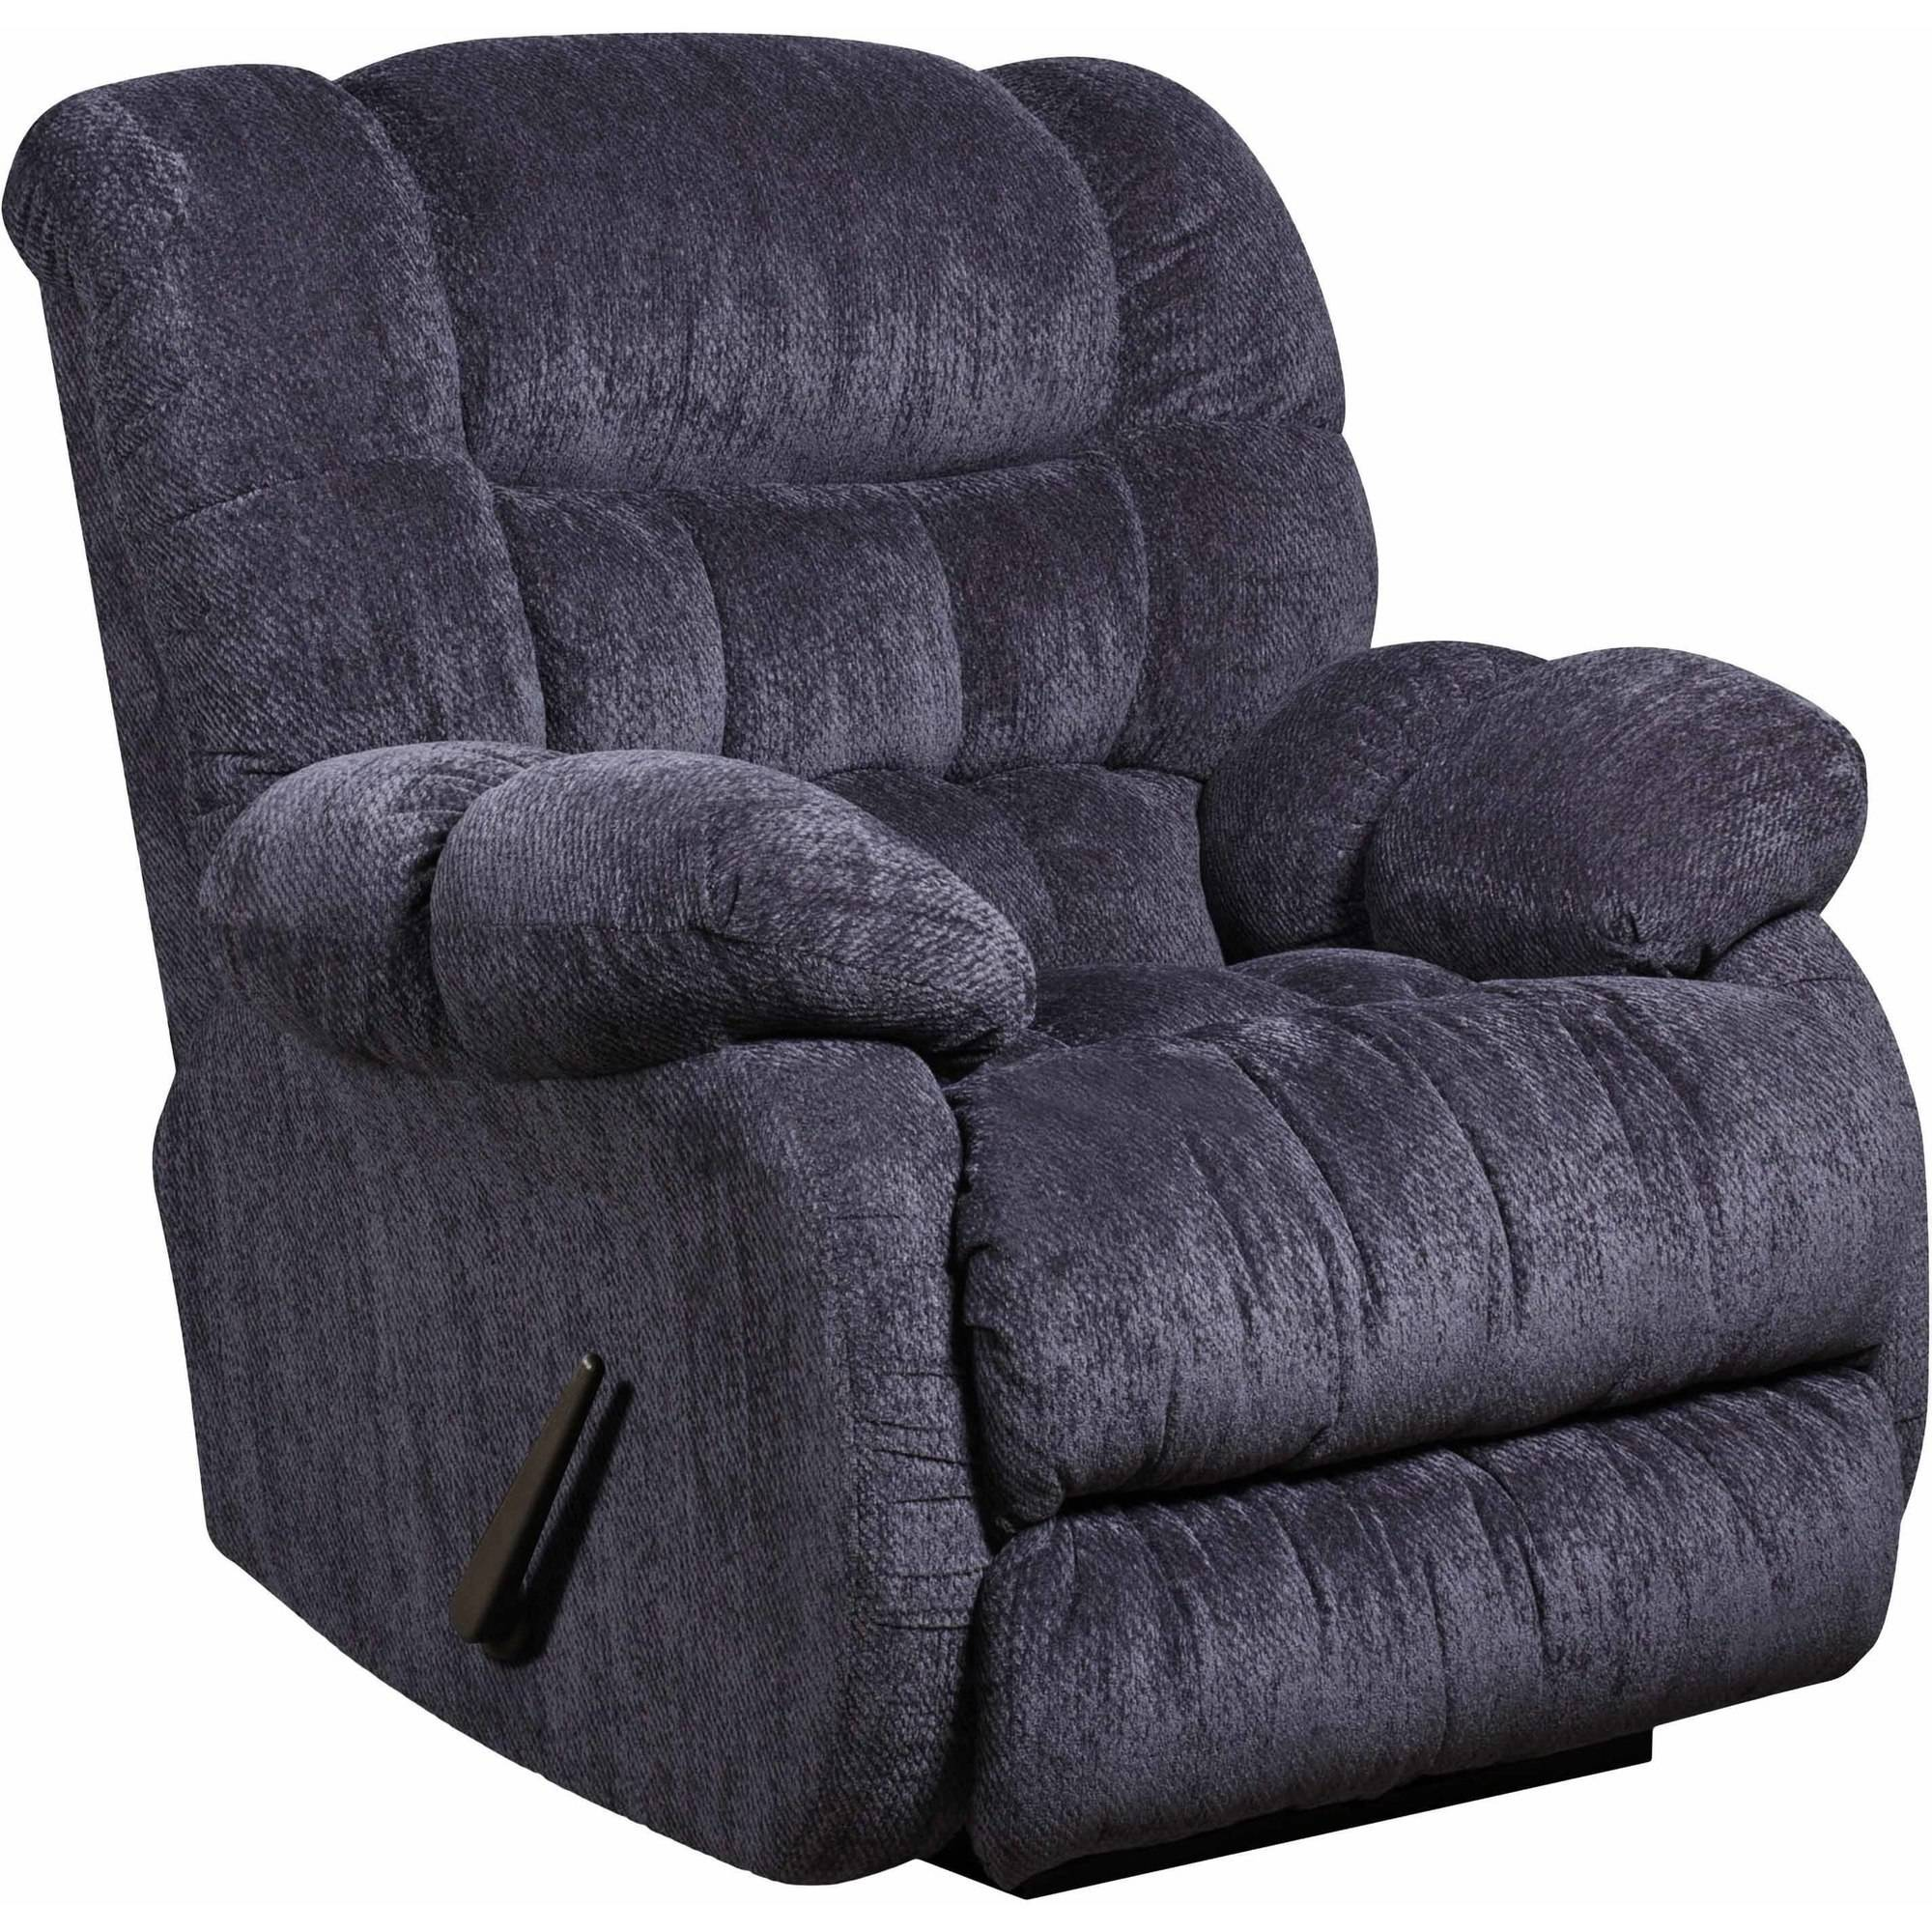 Flash Furniture Contemporary Columbia Blue Microfiber Rocker Recliner, Multiple Colors